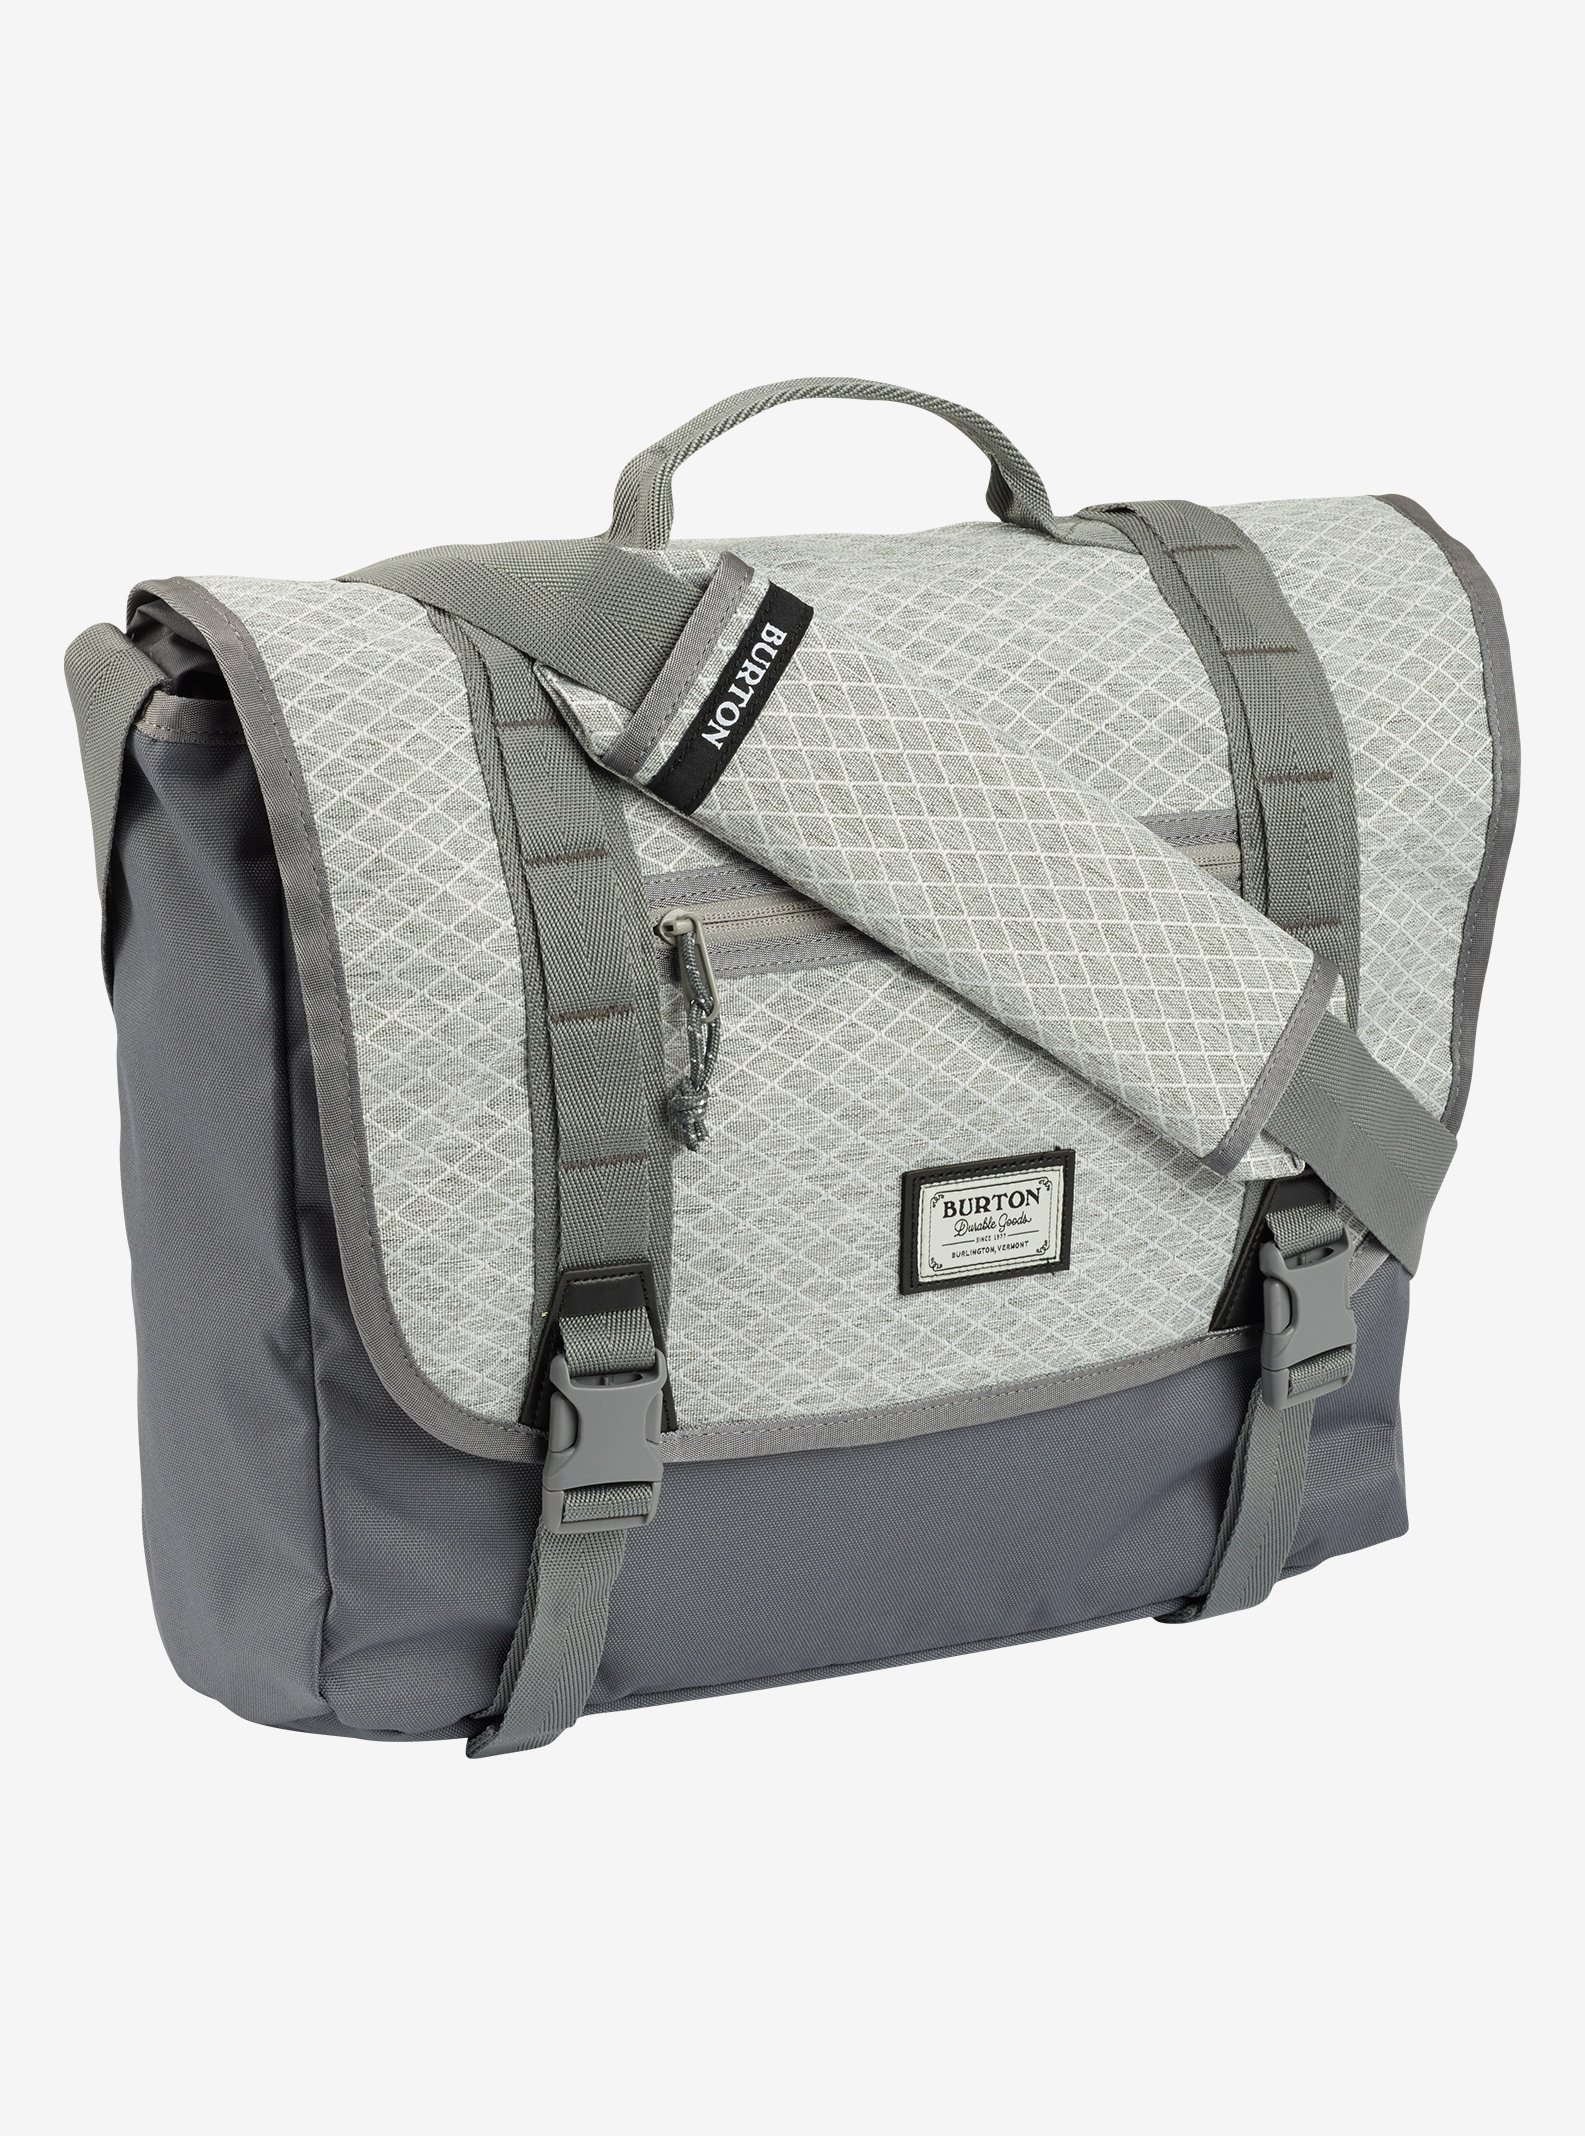 Burton Flint Messenger Bag shown in Grey Heather Diamond Ripstop